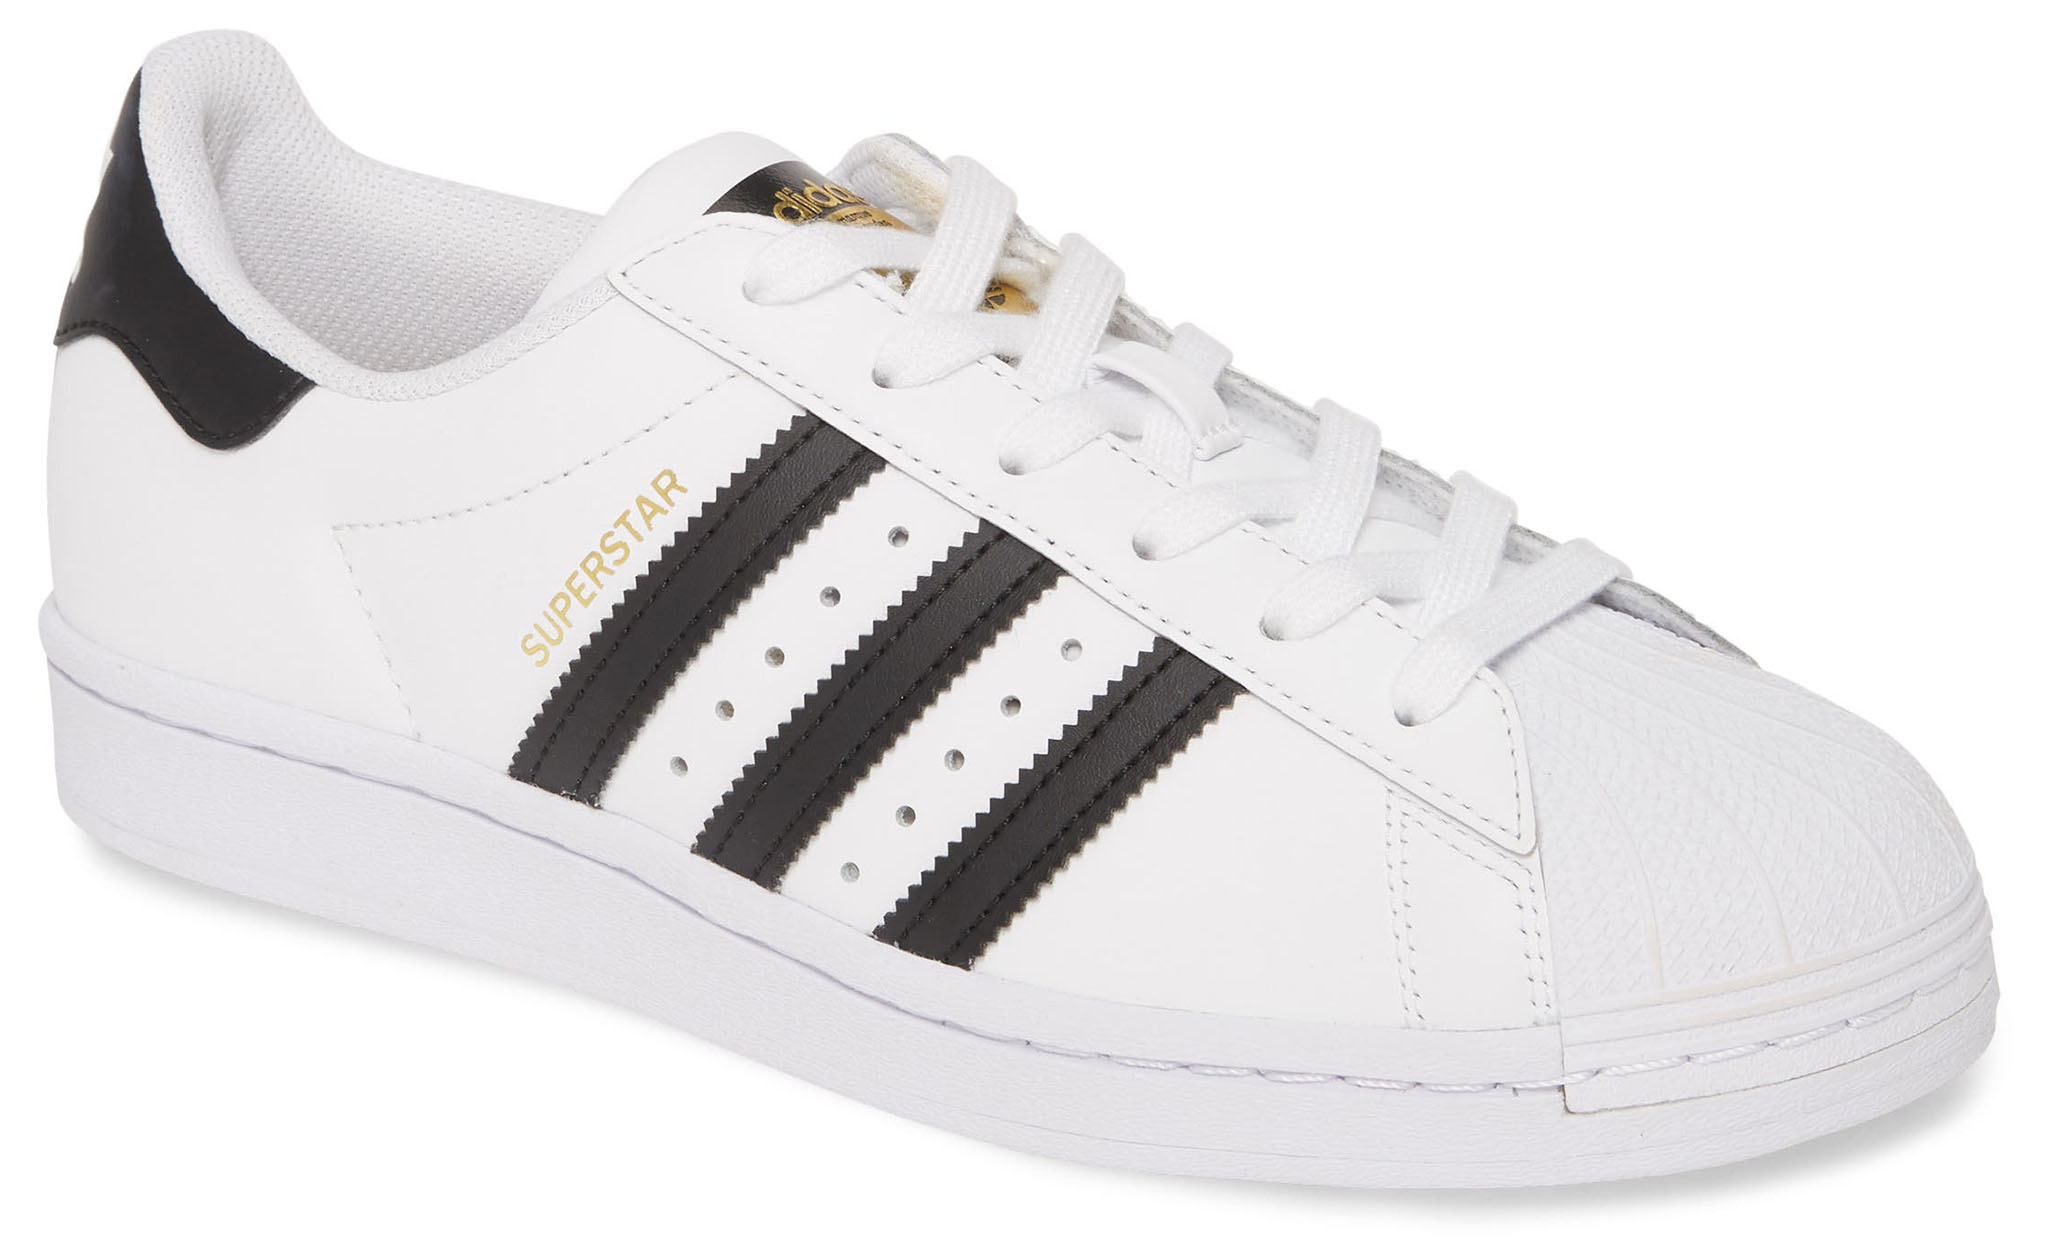 The Superstar is one of Adidas' most iconic silhouettes featuring serrated 3-stripes and a clamshell toe